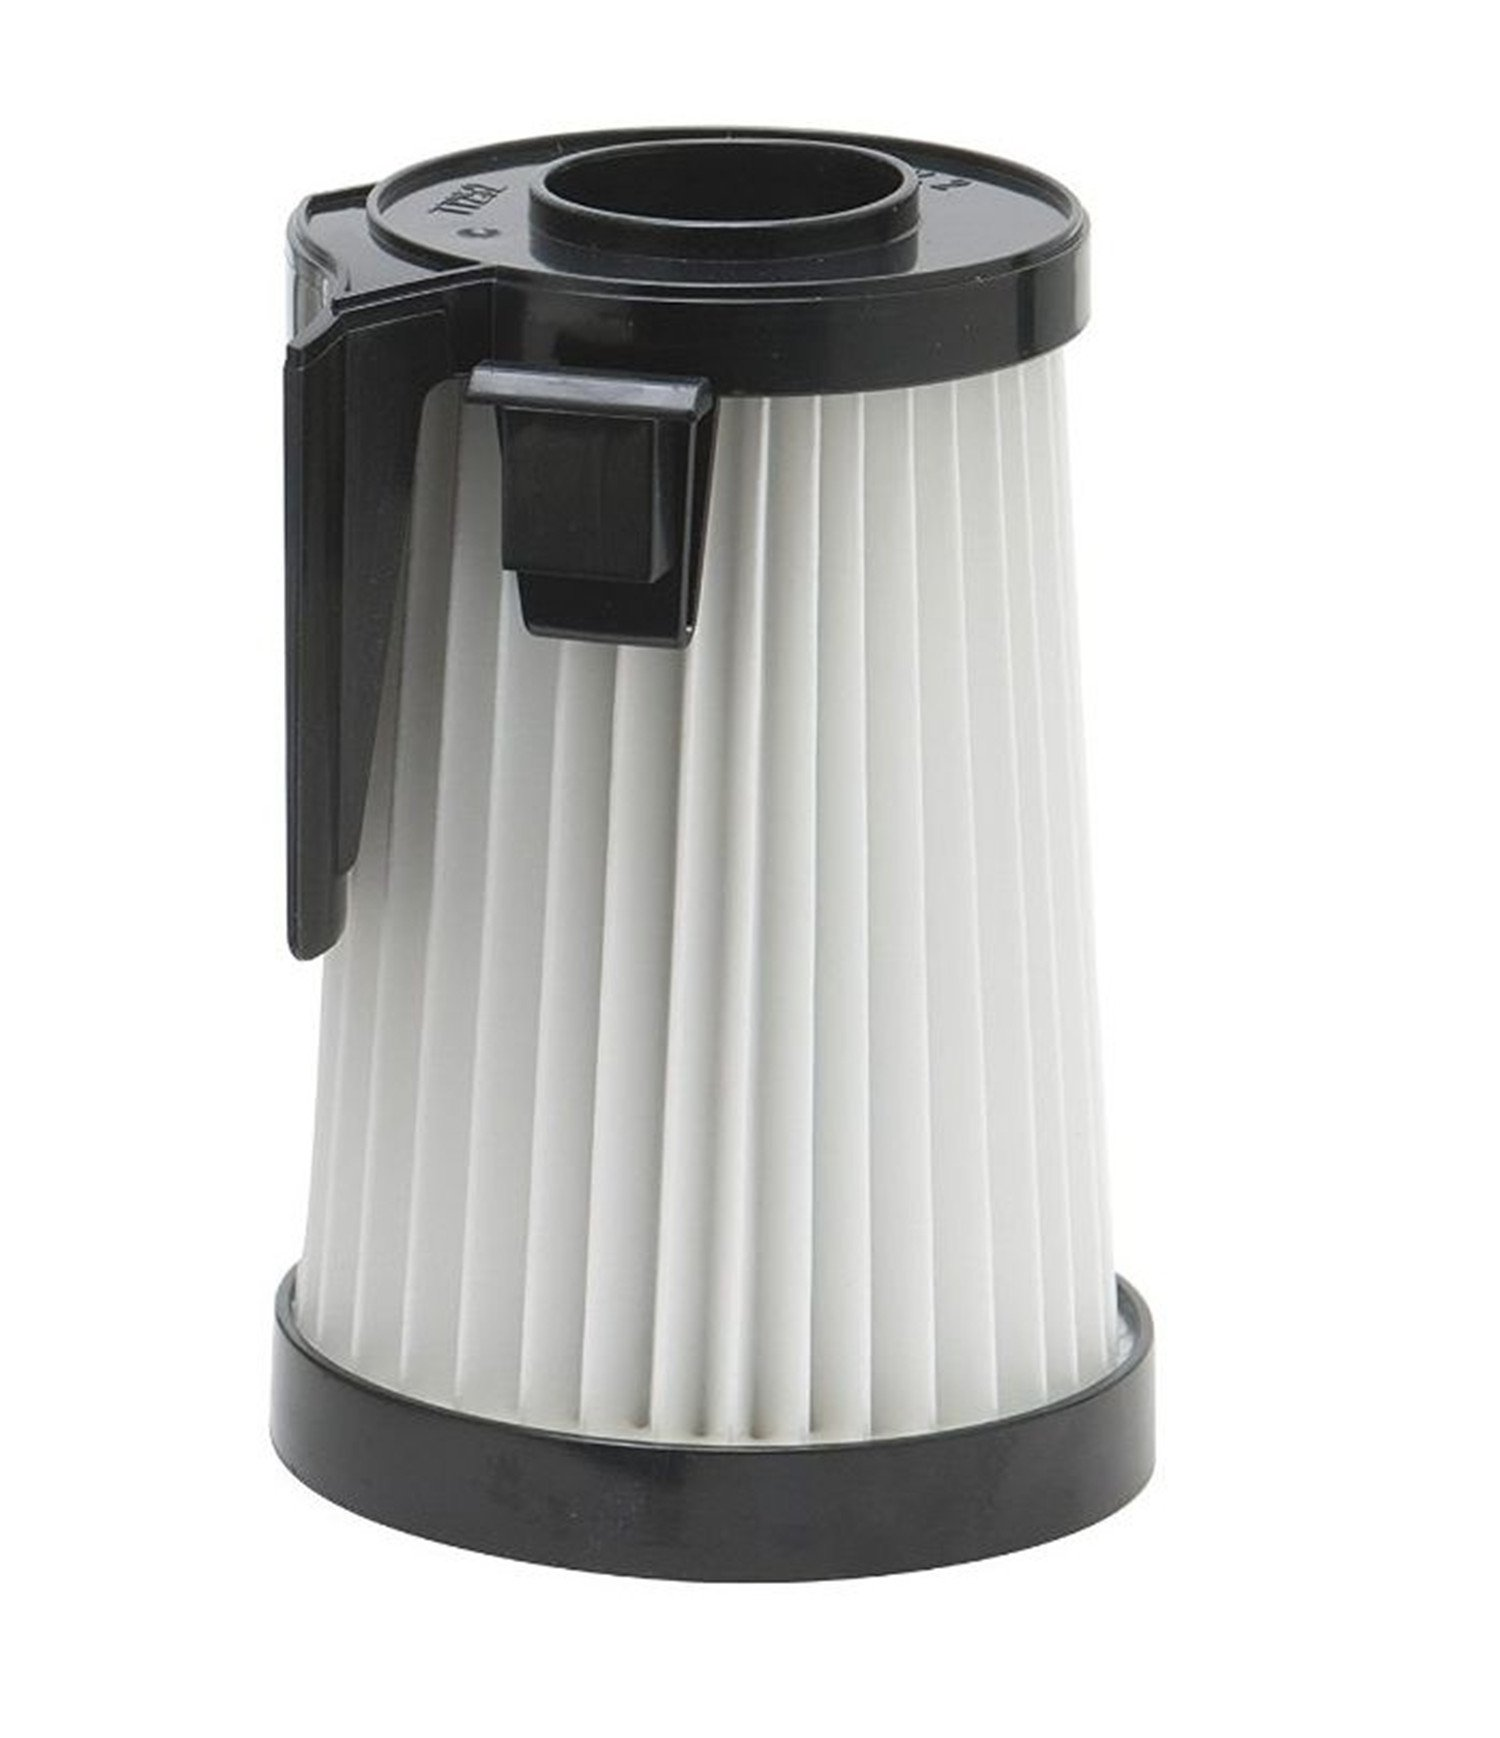 Vacuum Cleaners Filter For Eureka 62731 Optima 631DX 431F 437AZ 439AZ by Eagleggo (Image #2)